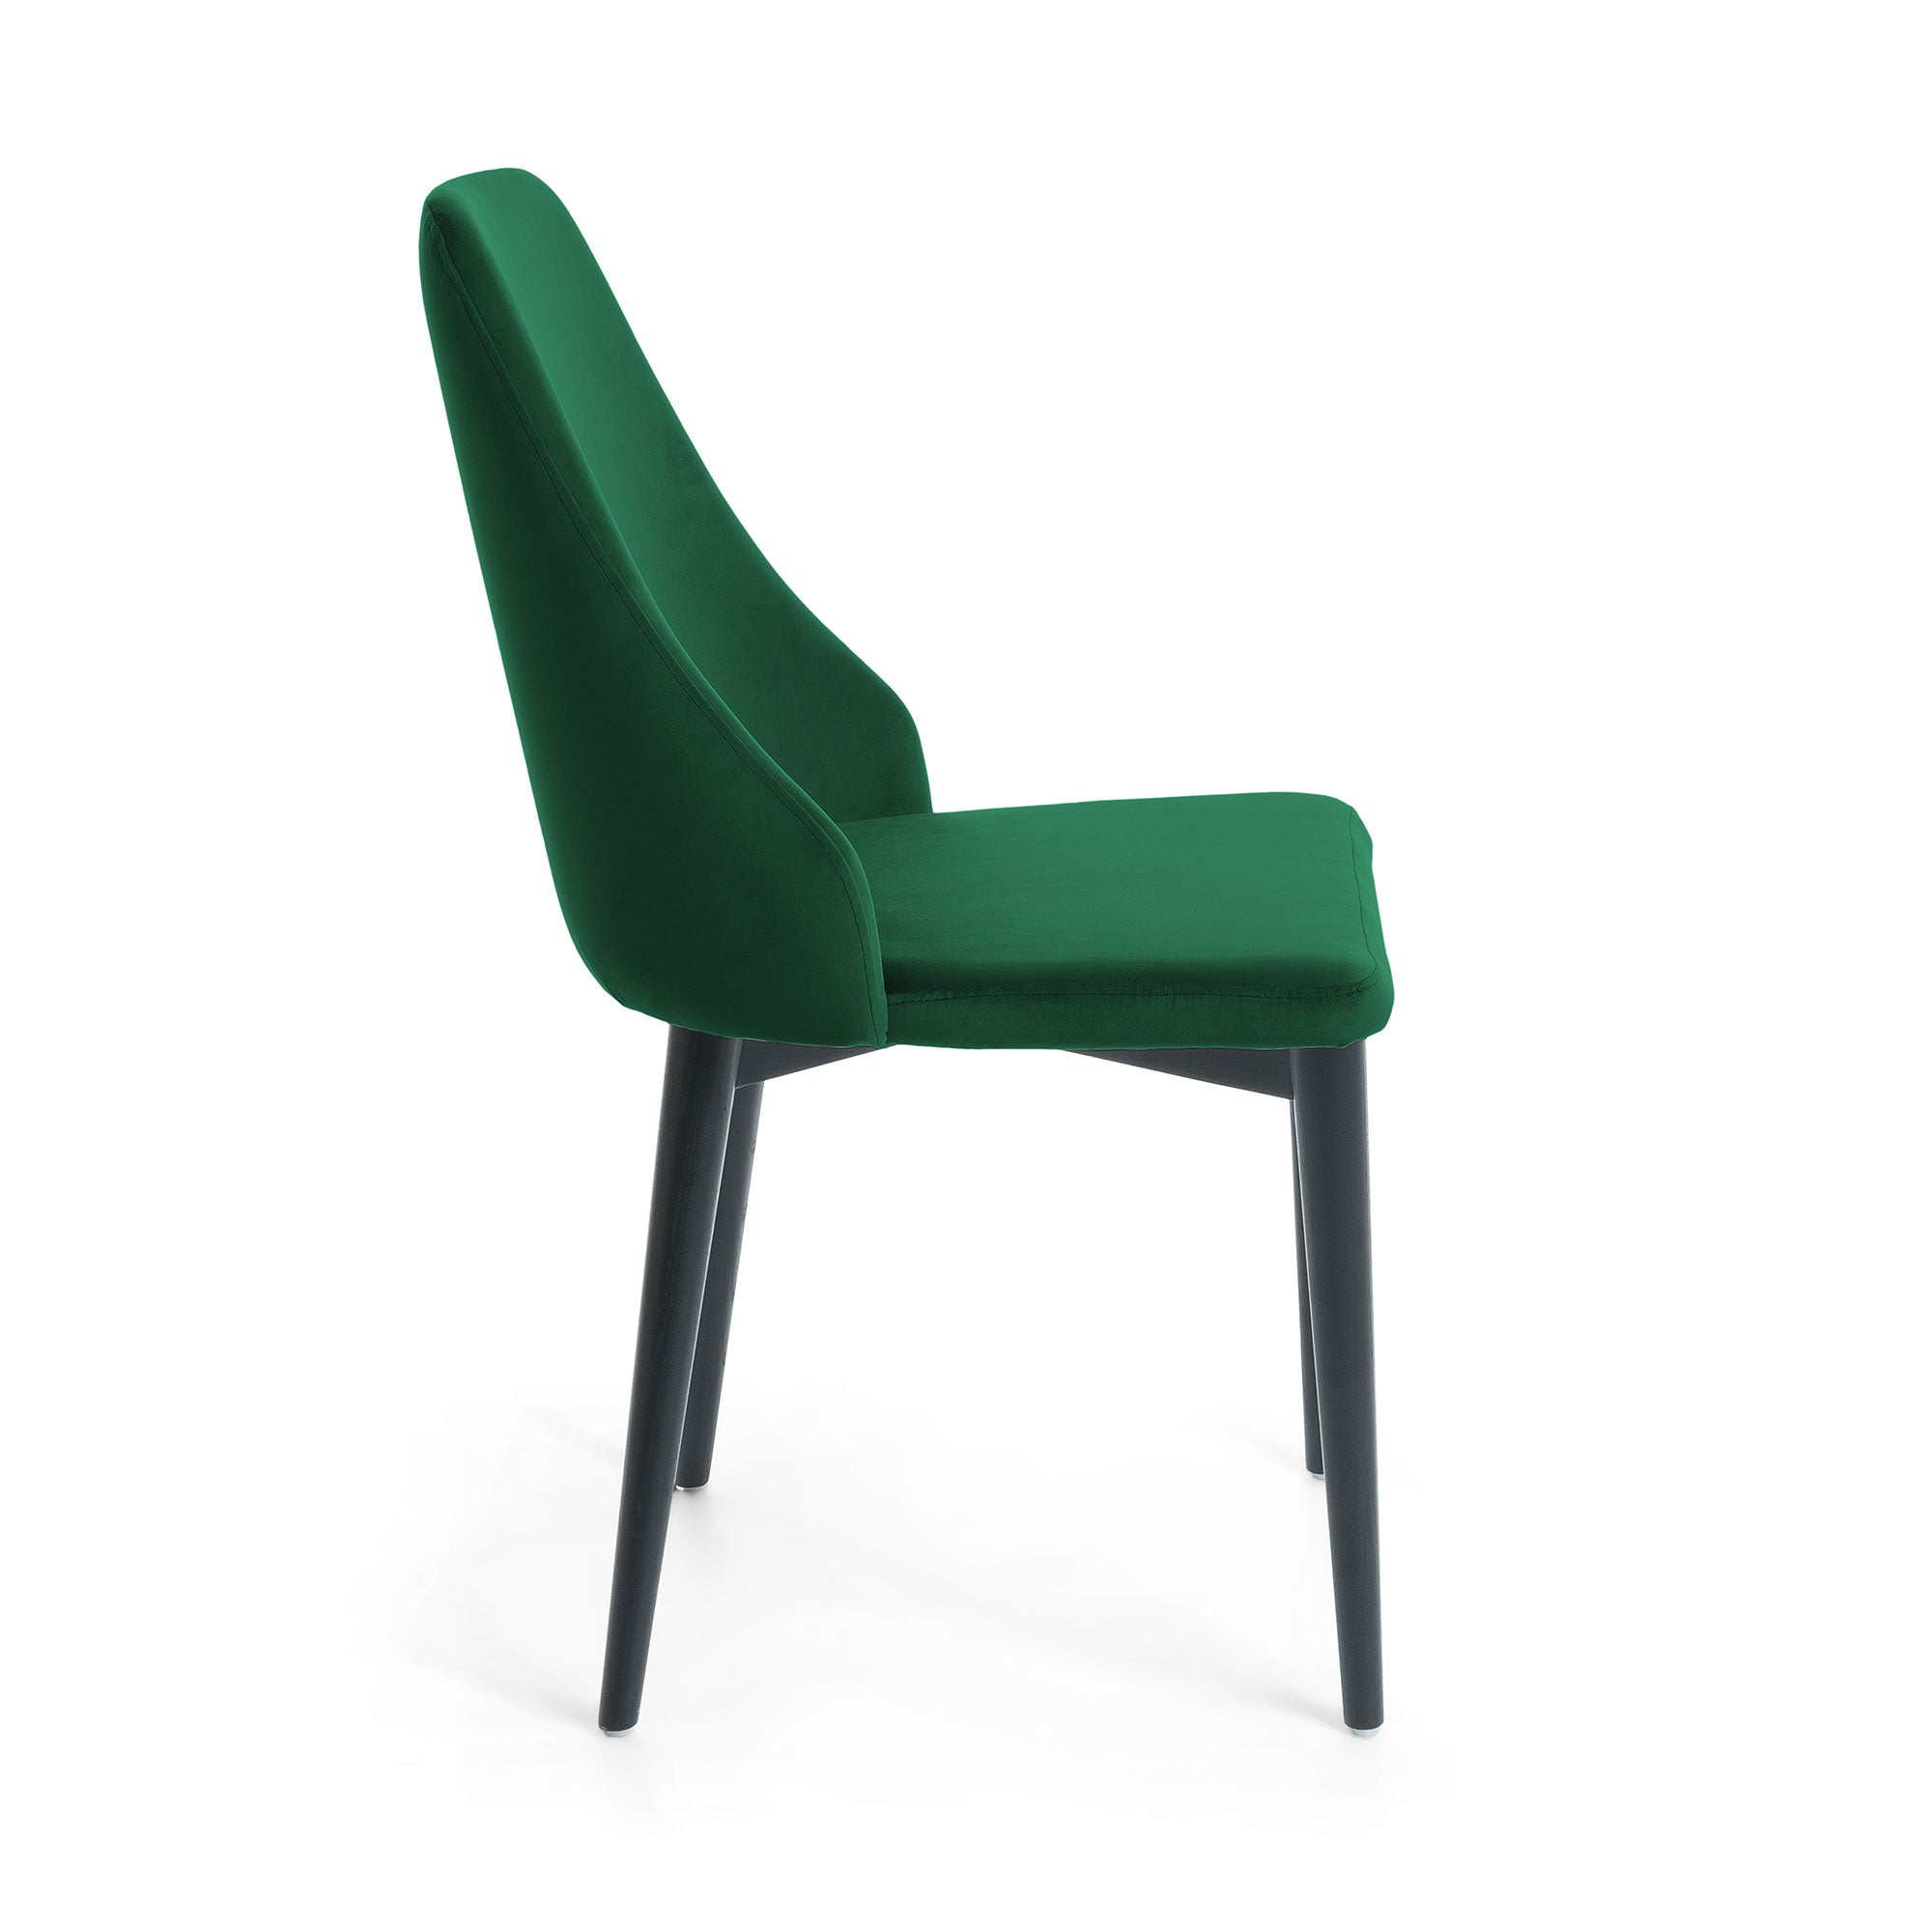 ROXIE Chair black - velvet green, Dining Chair - Home-Buy Interiors